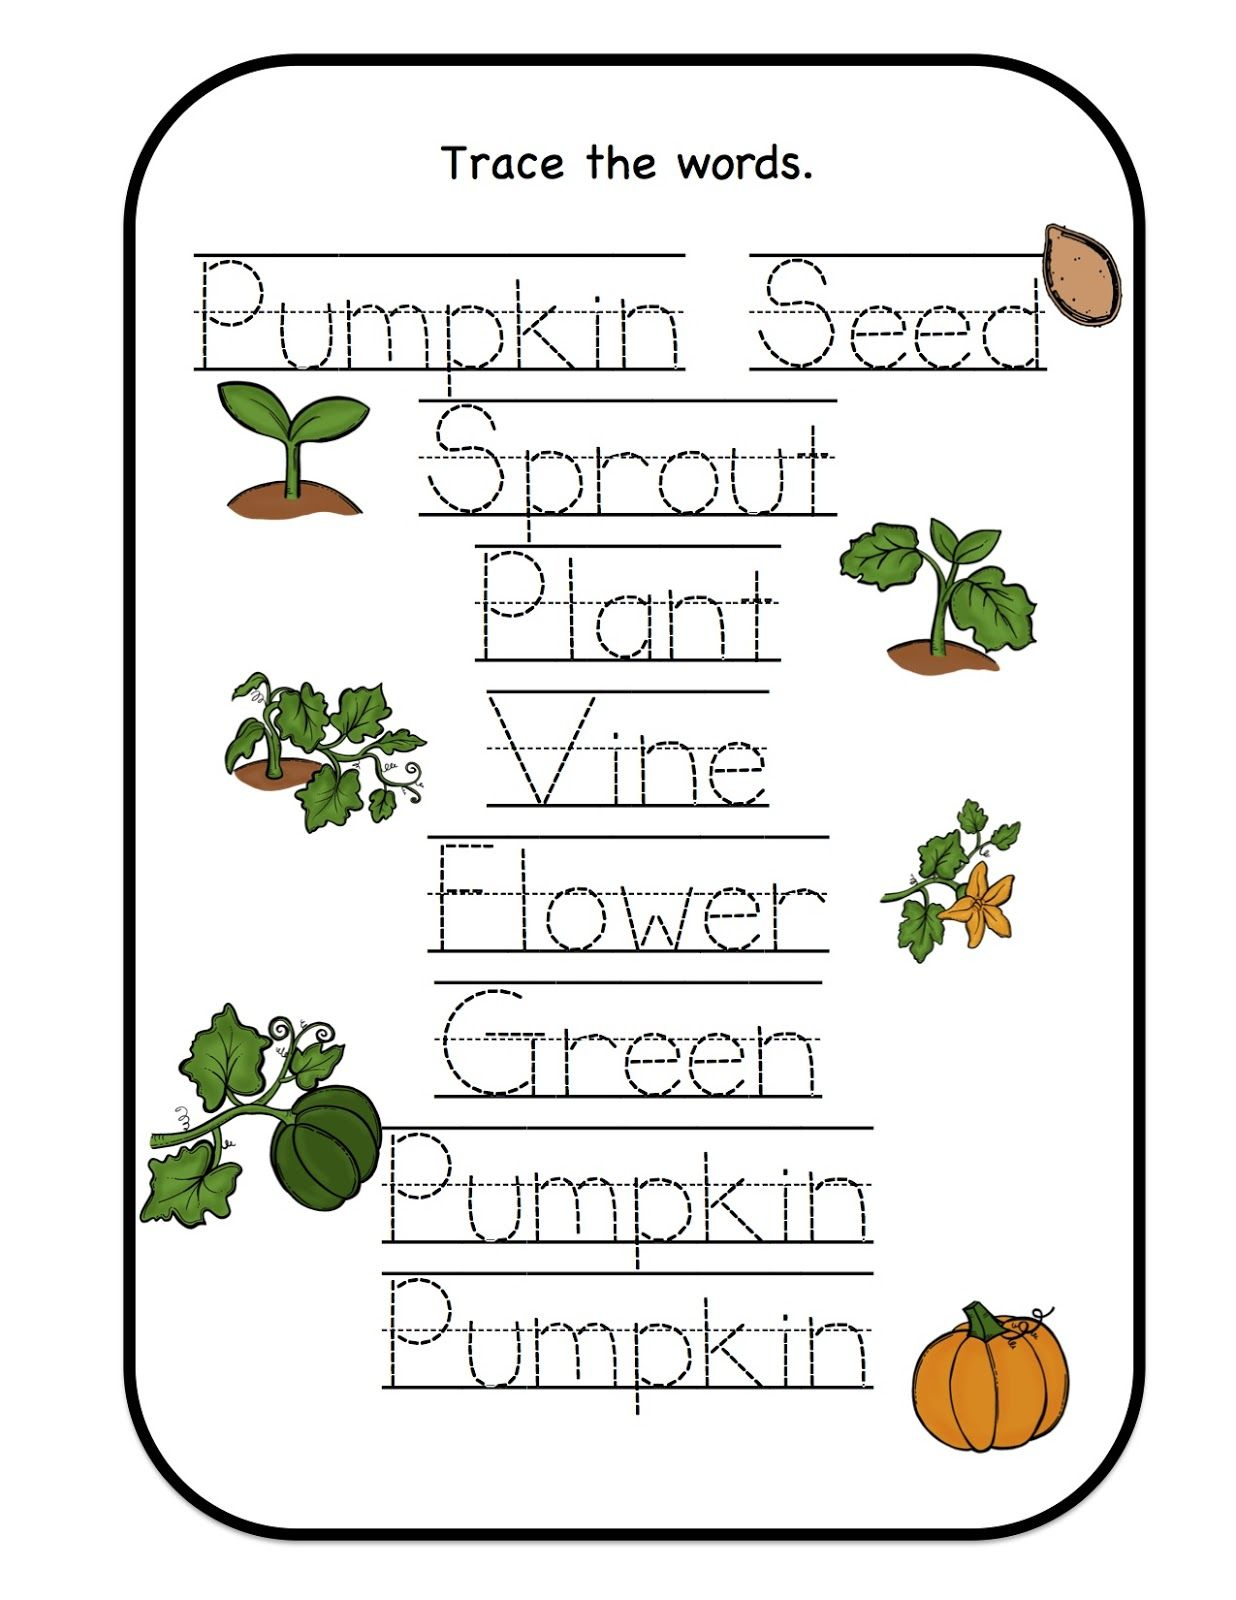 Preschool Printables February 2013 Pumpkin life cycle